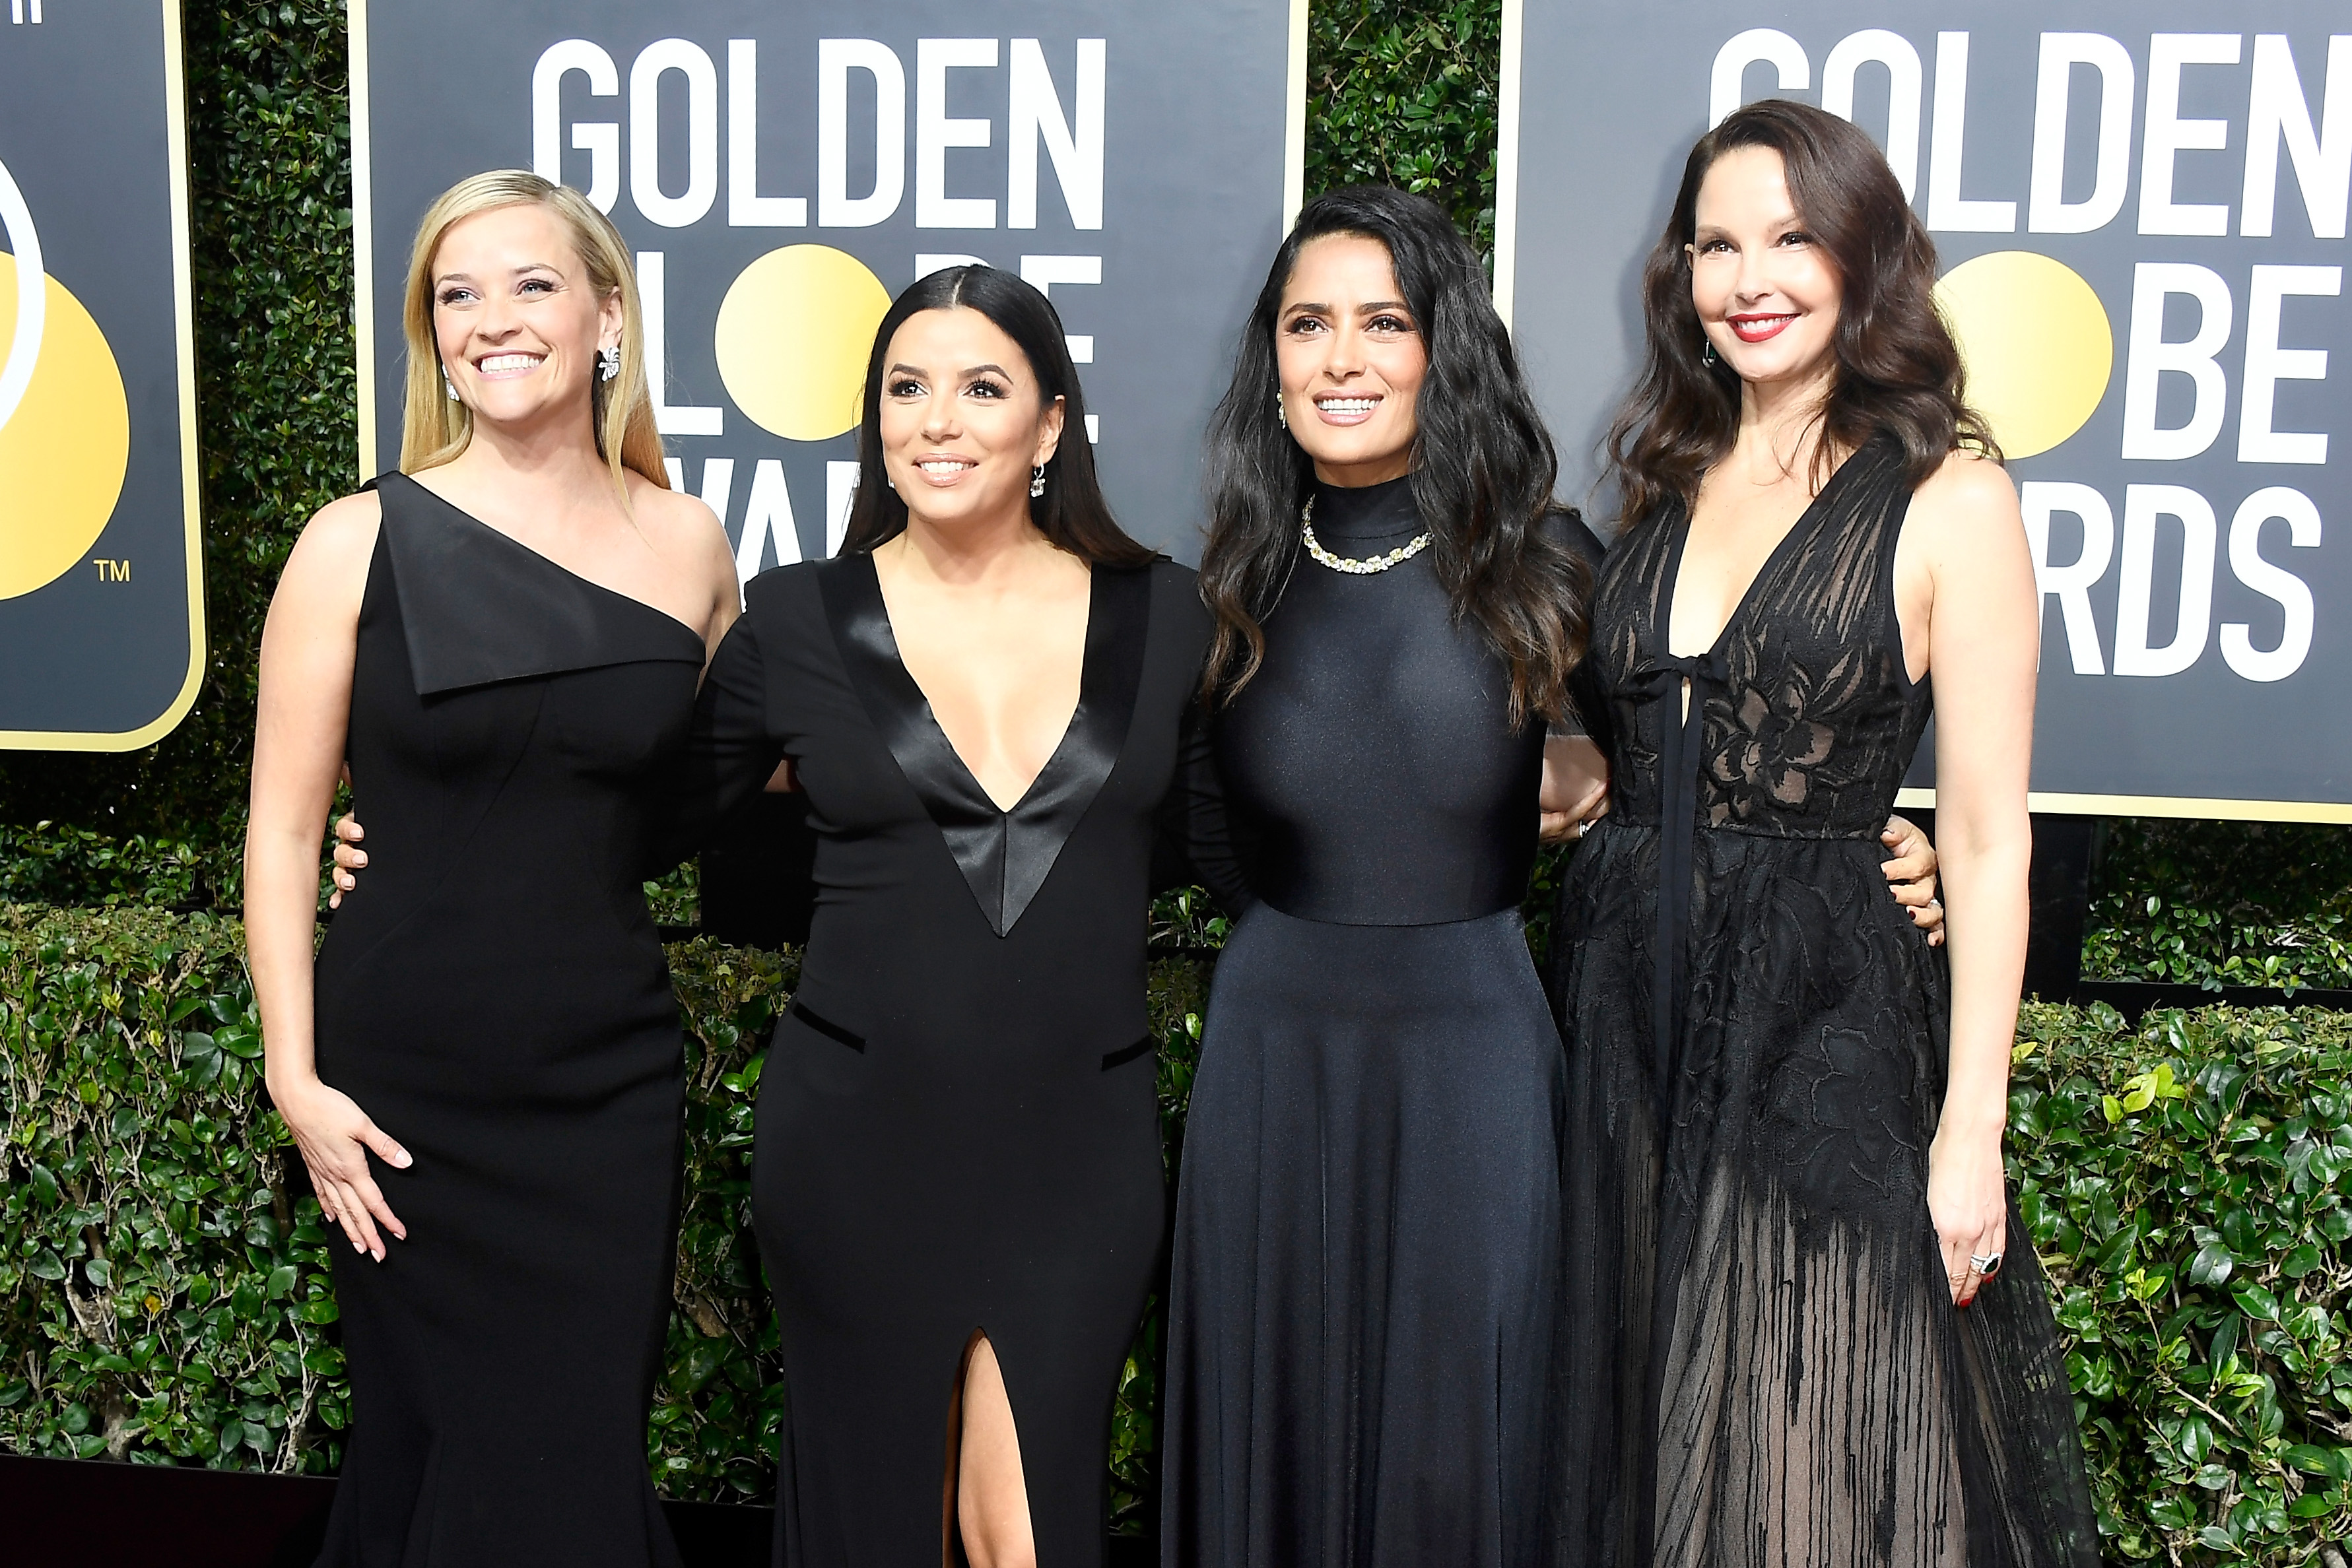 Women Stand Up, Guillermo del Toro & 'Coco' Win Big, & Other Memorable Golden Globes Moments